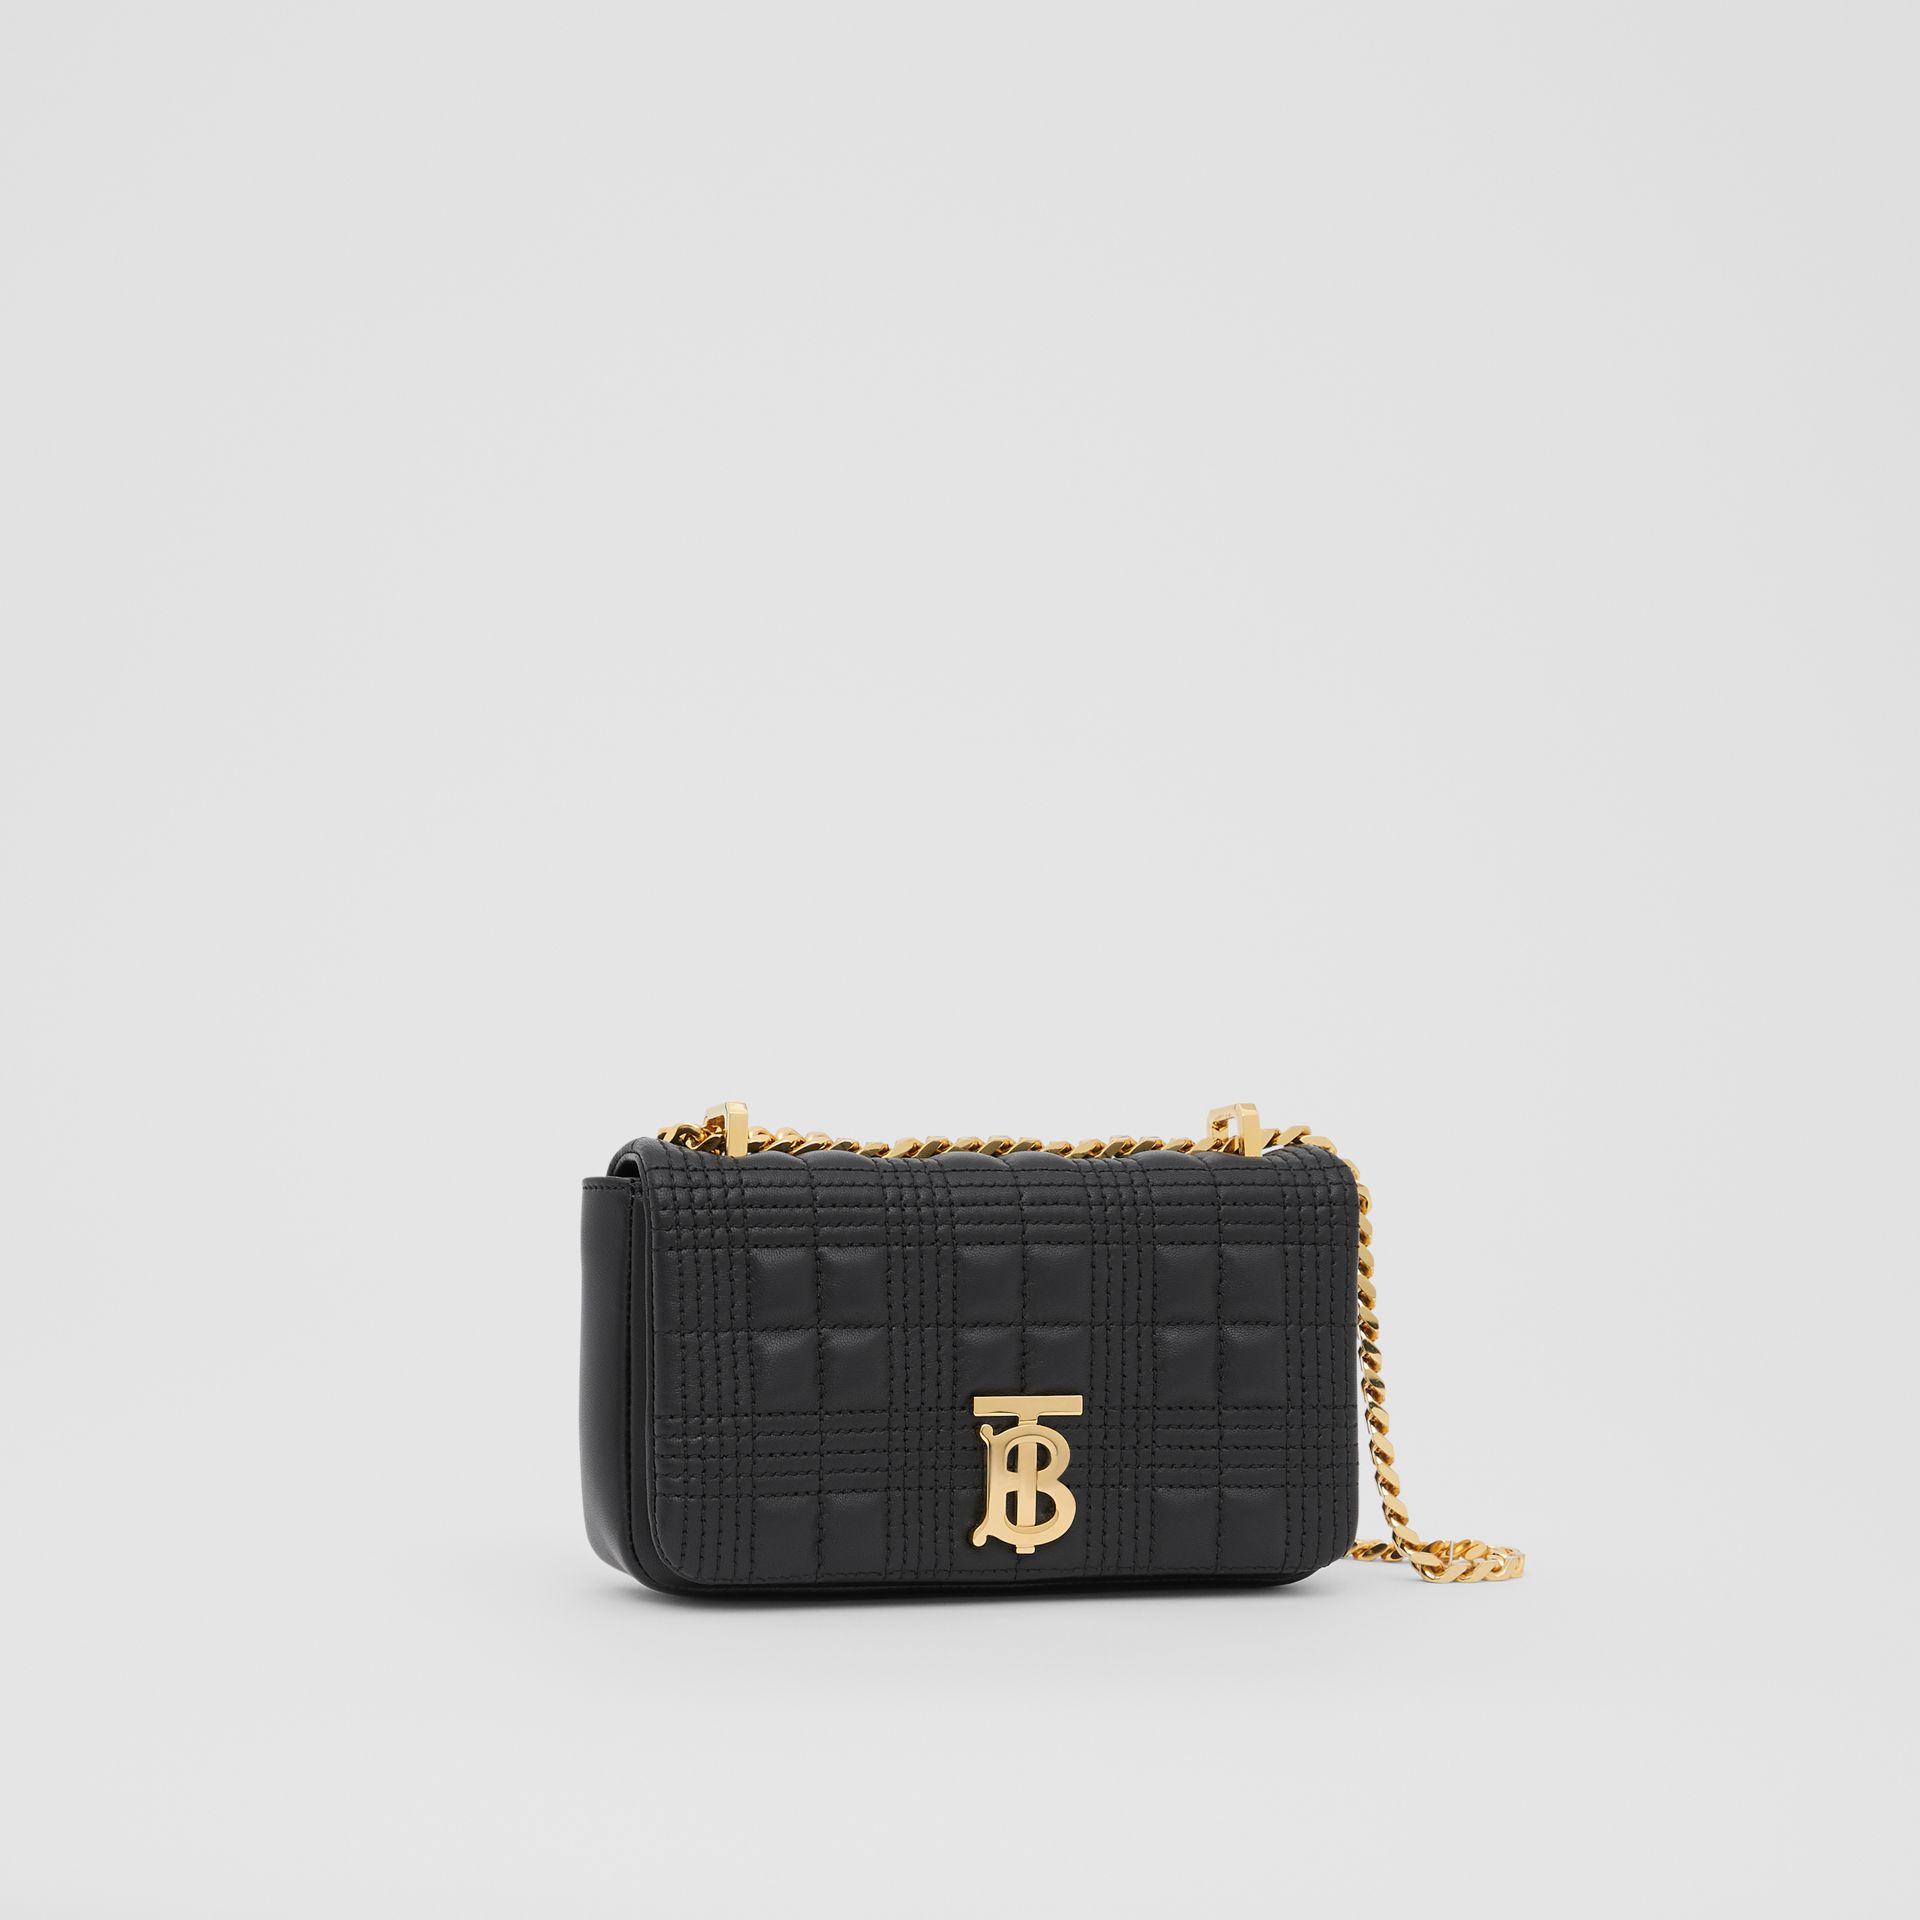 Mini Quilted Lambskin Lola Bag in Black/light Gold - Women | Burberry - gallery image 6